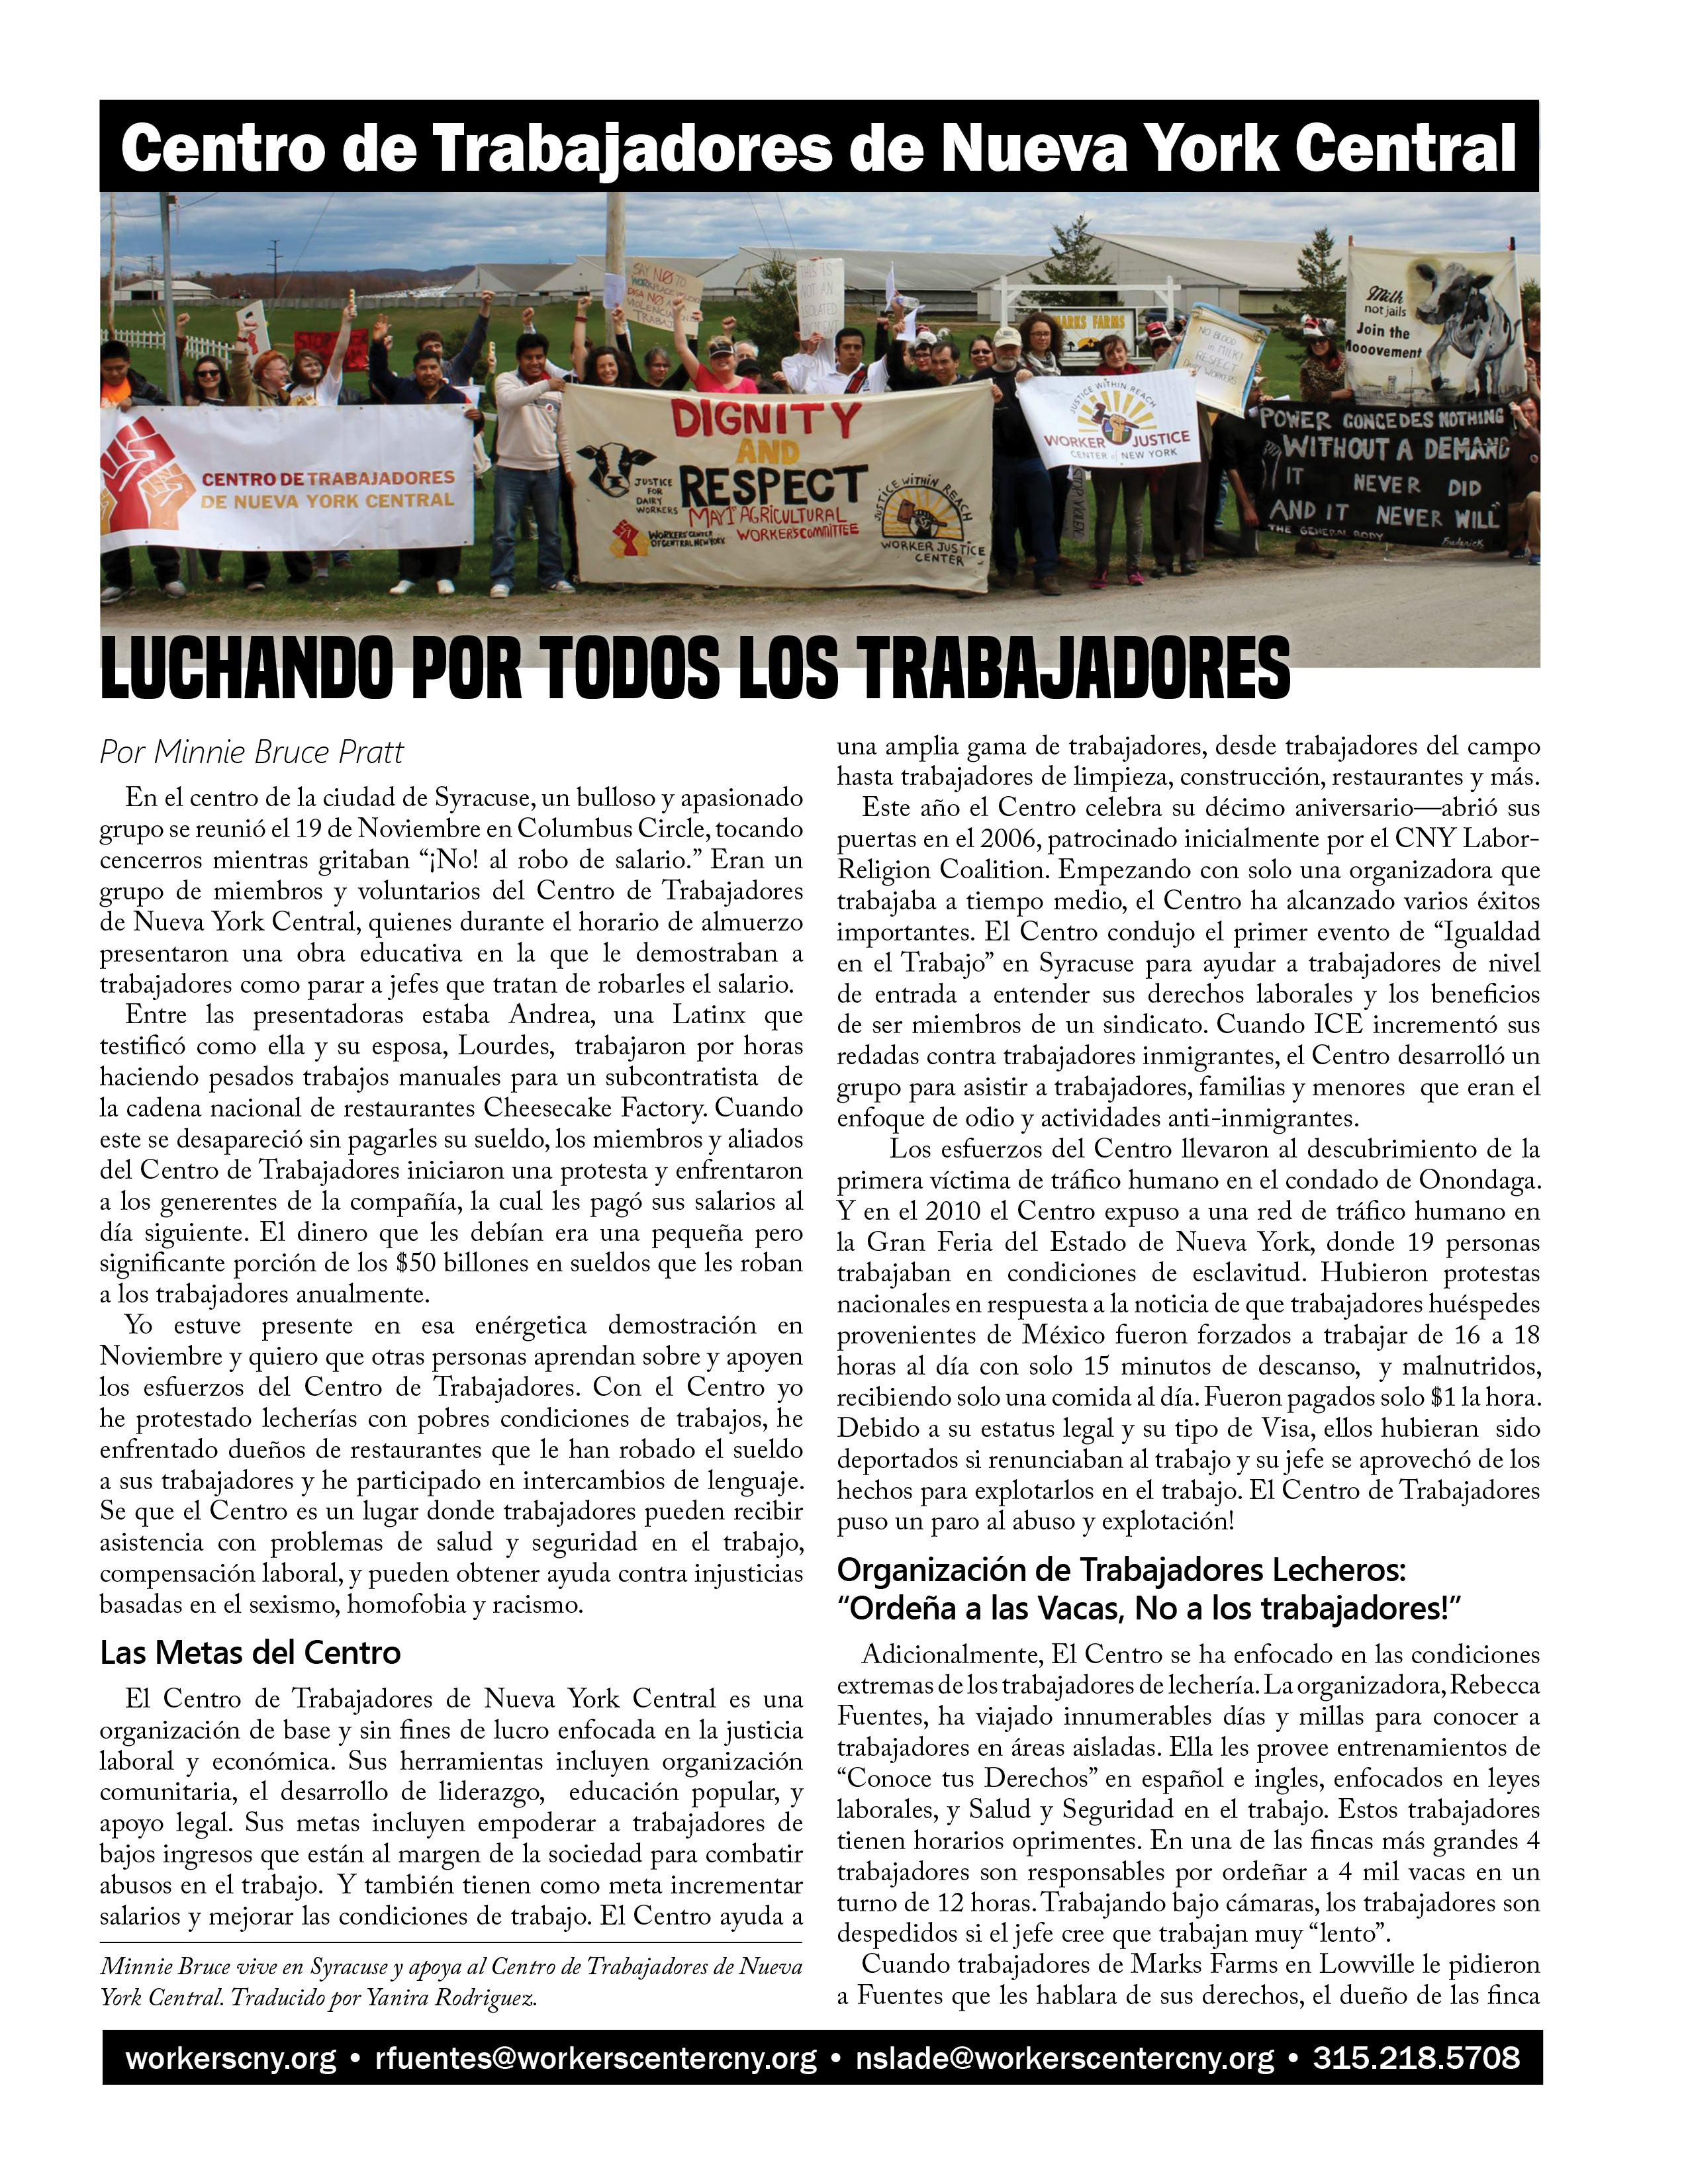 Spanish Cover of Worker's Center special pullout